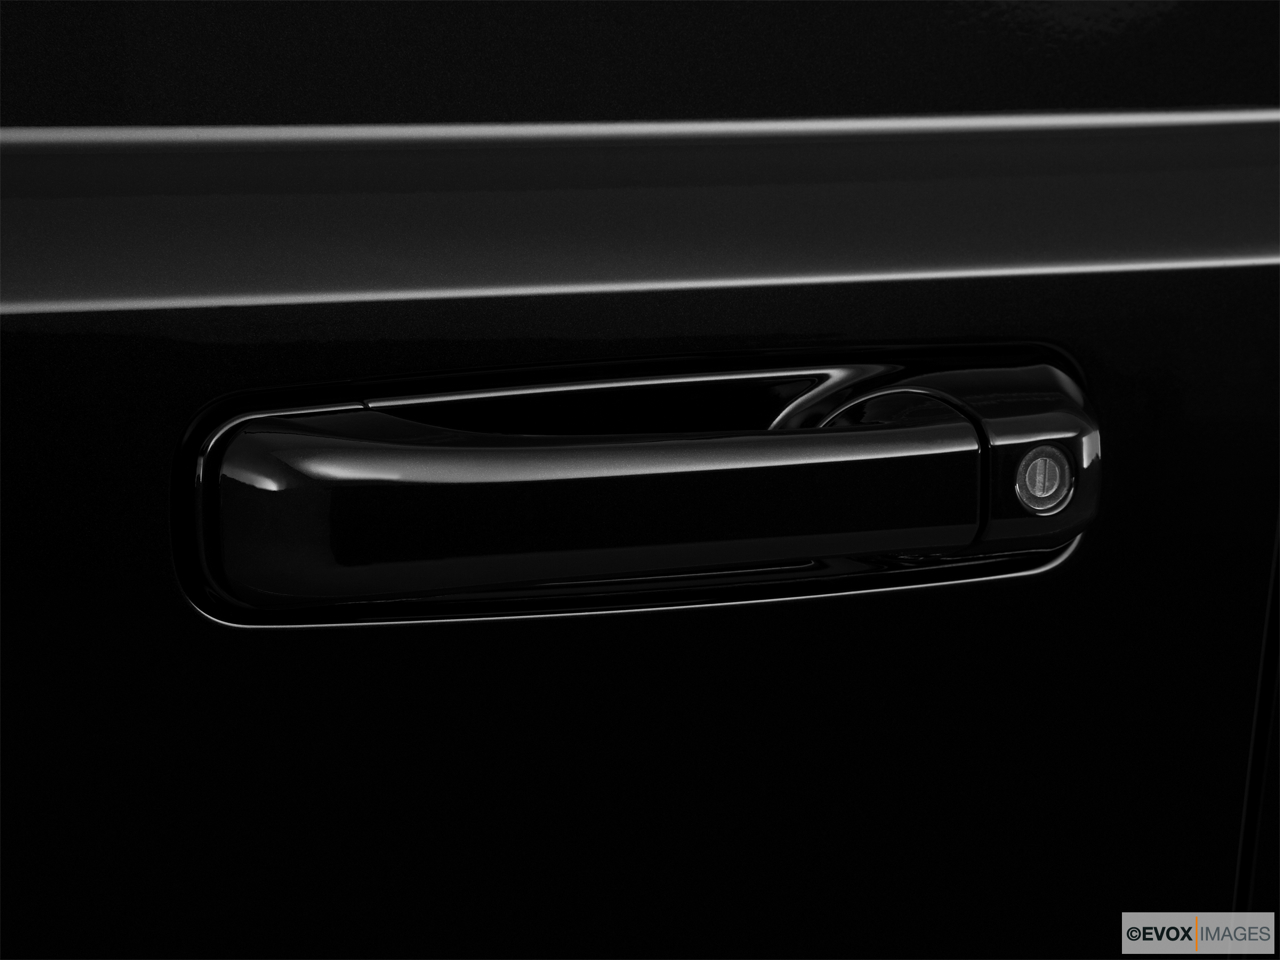 2010 Jeep Commander Limited Drivers Side Door handle.